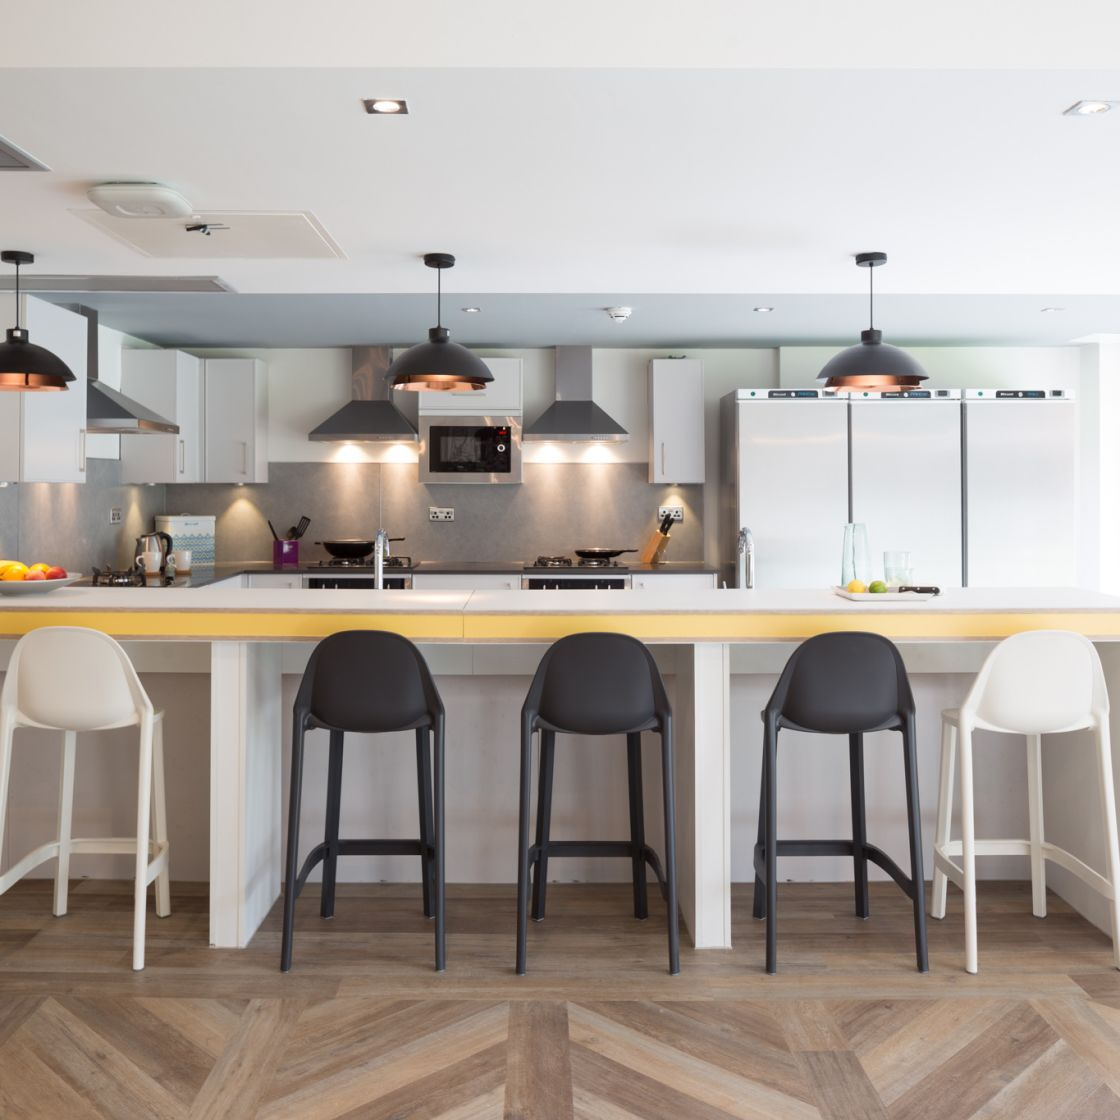 Mega Kitchen with breakfast bar and seating at IconInc, The Glassworks. Student Accommodation in Leeds